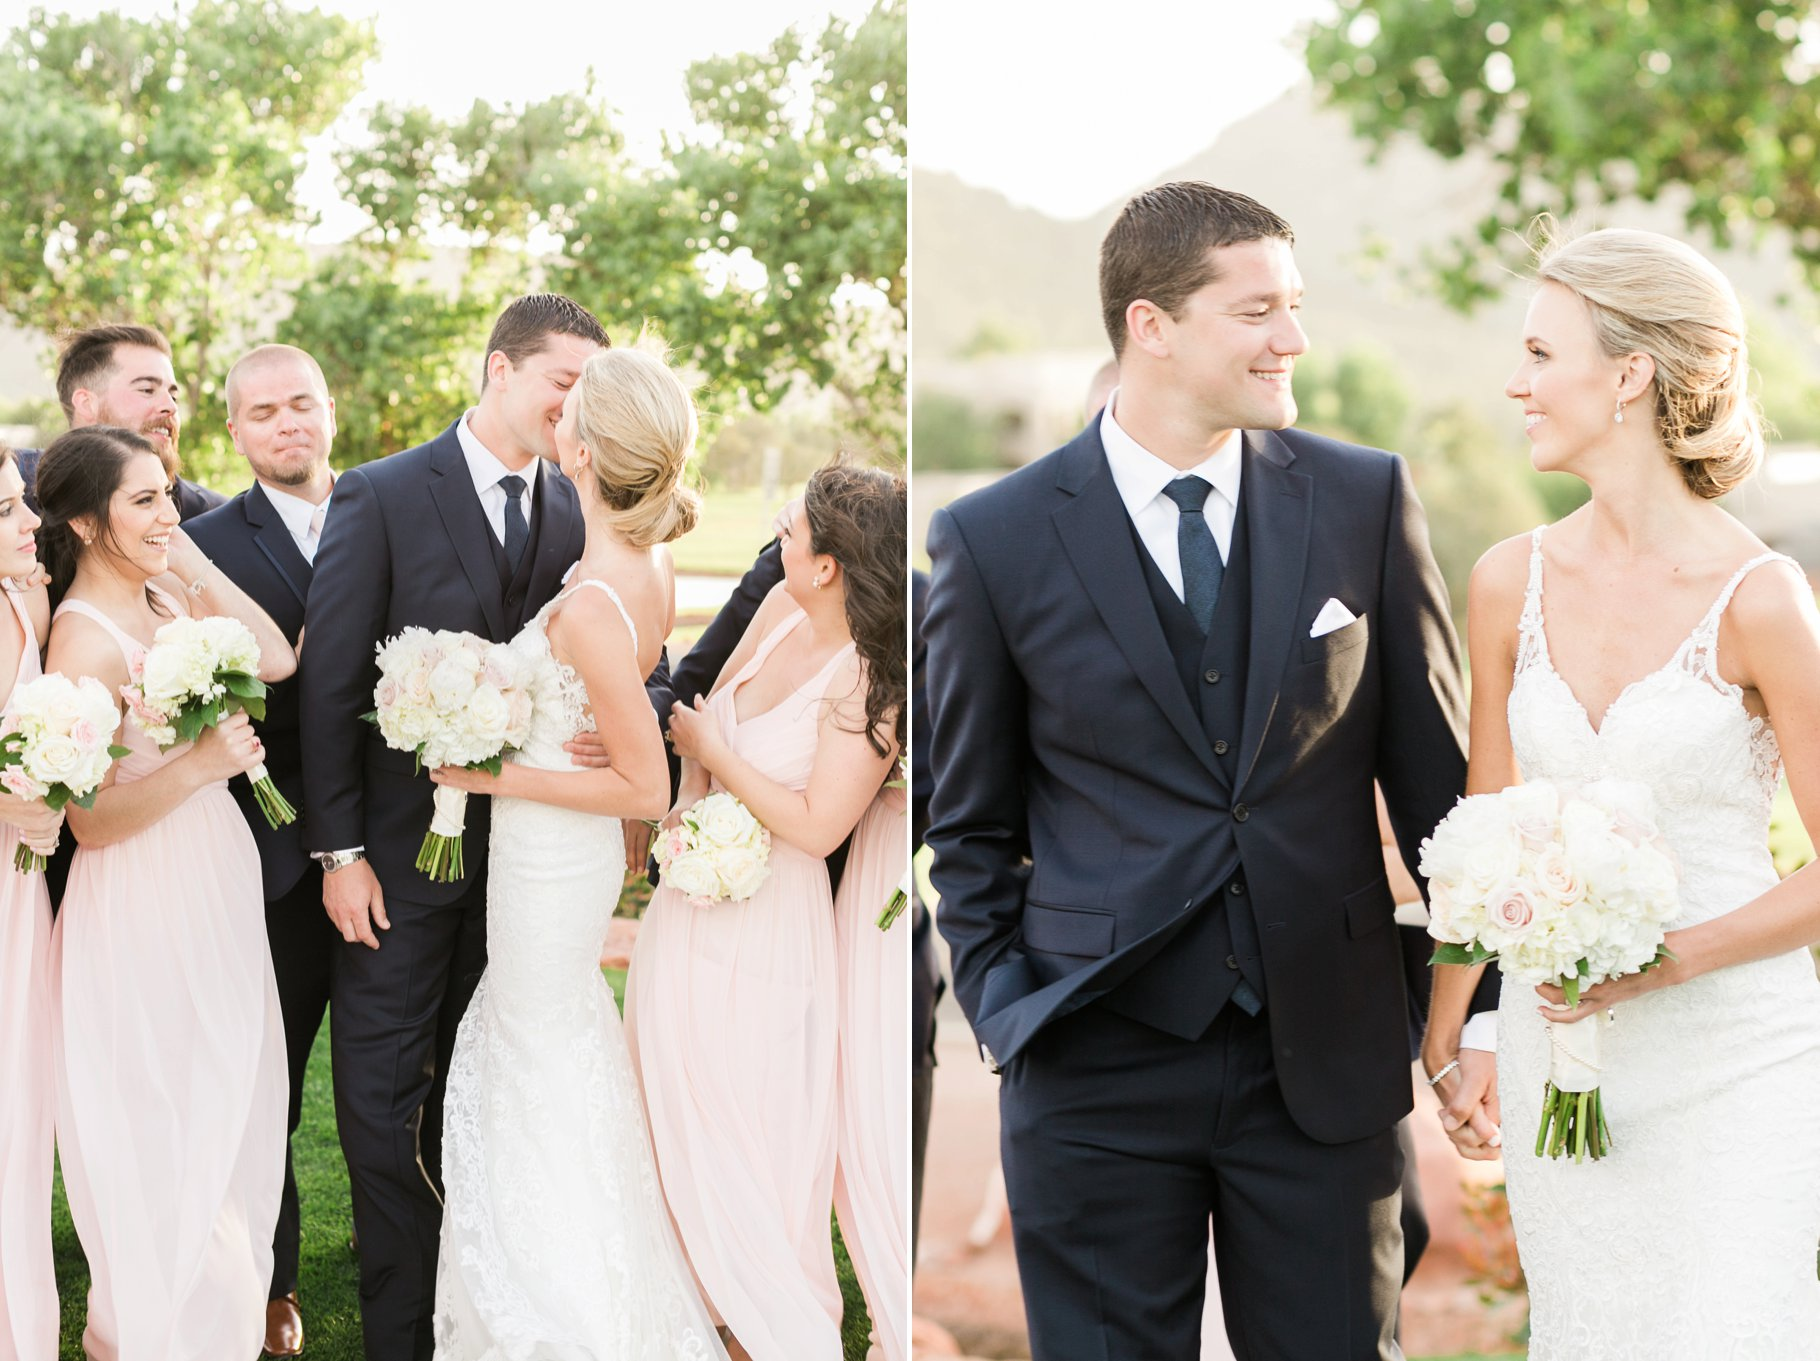 sedona wedding-21_GRETCHEN WAKEMAN PHOTOGRAPHY.jpg